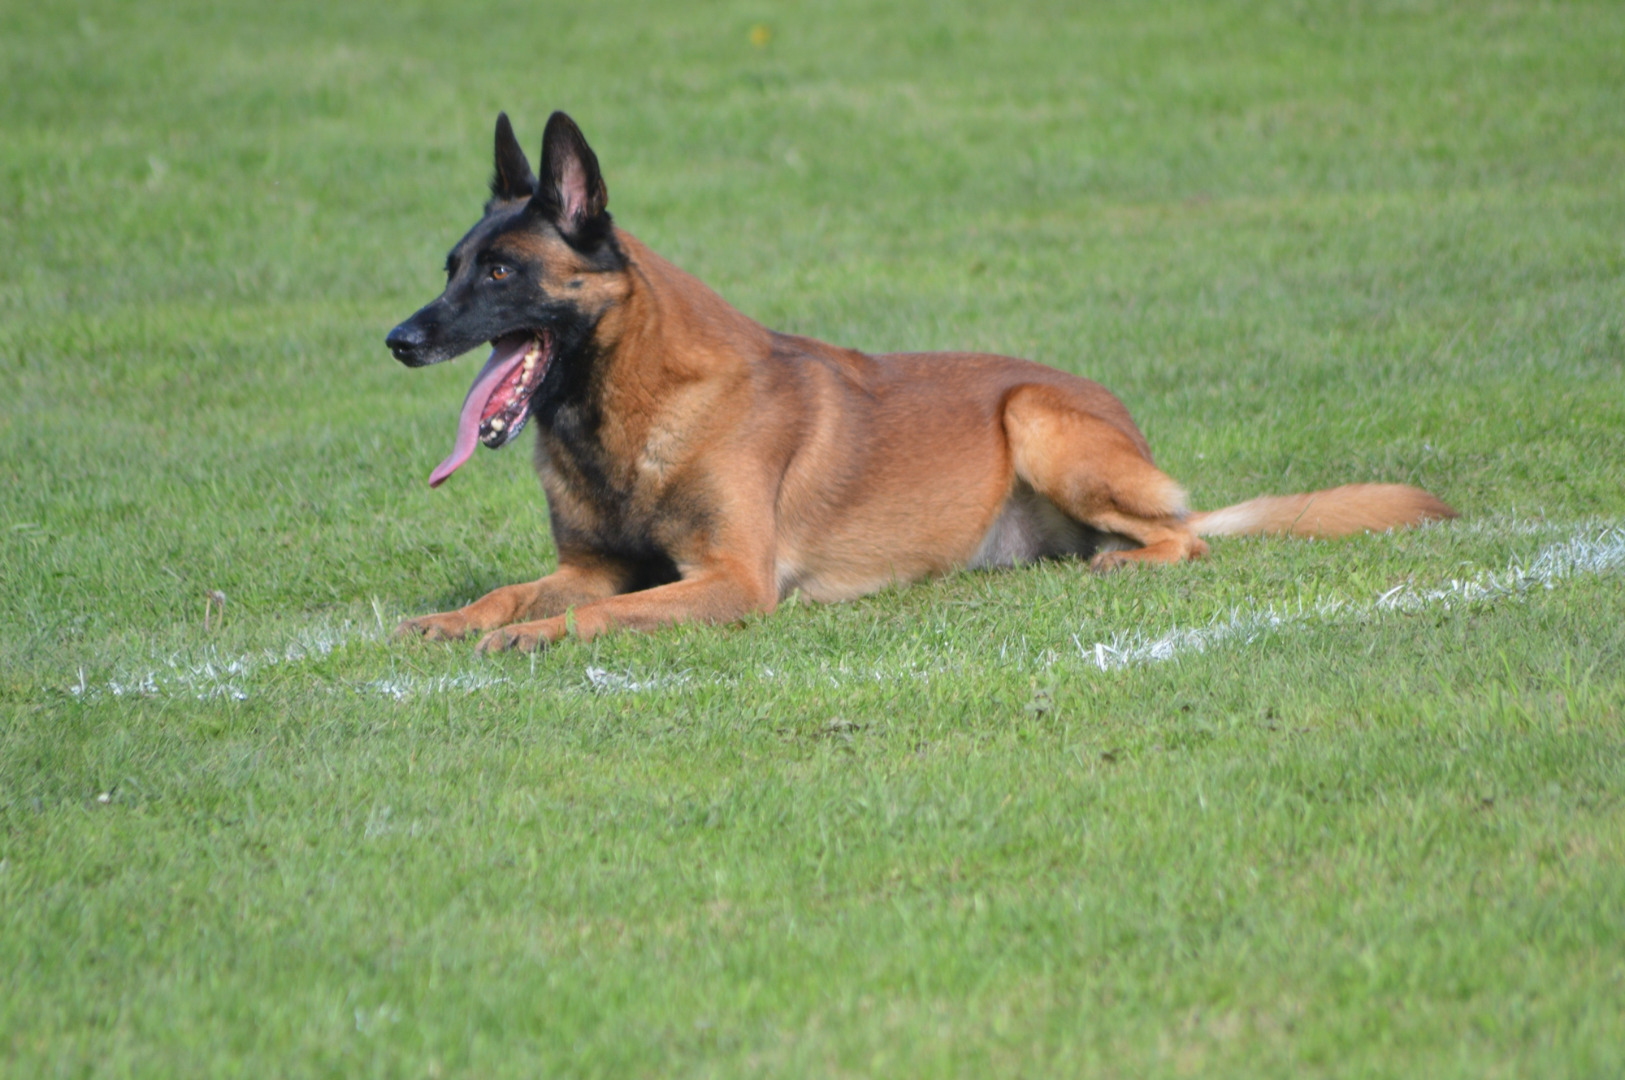 Elevage familial berger malinois/berger allemand à Courset